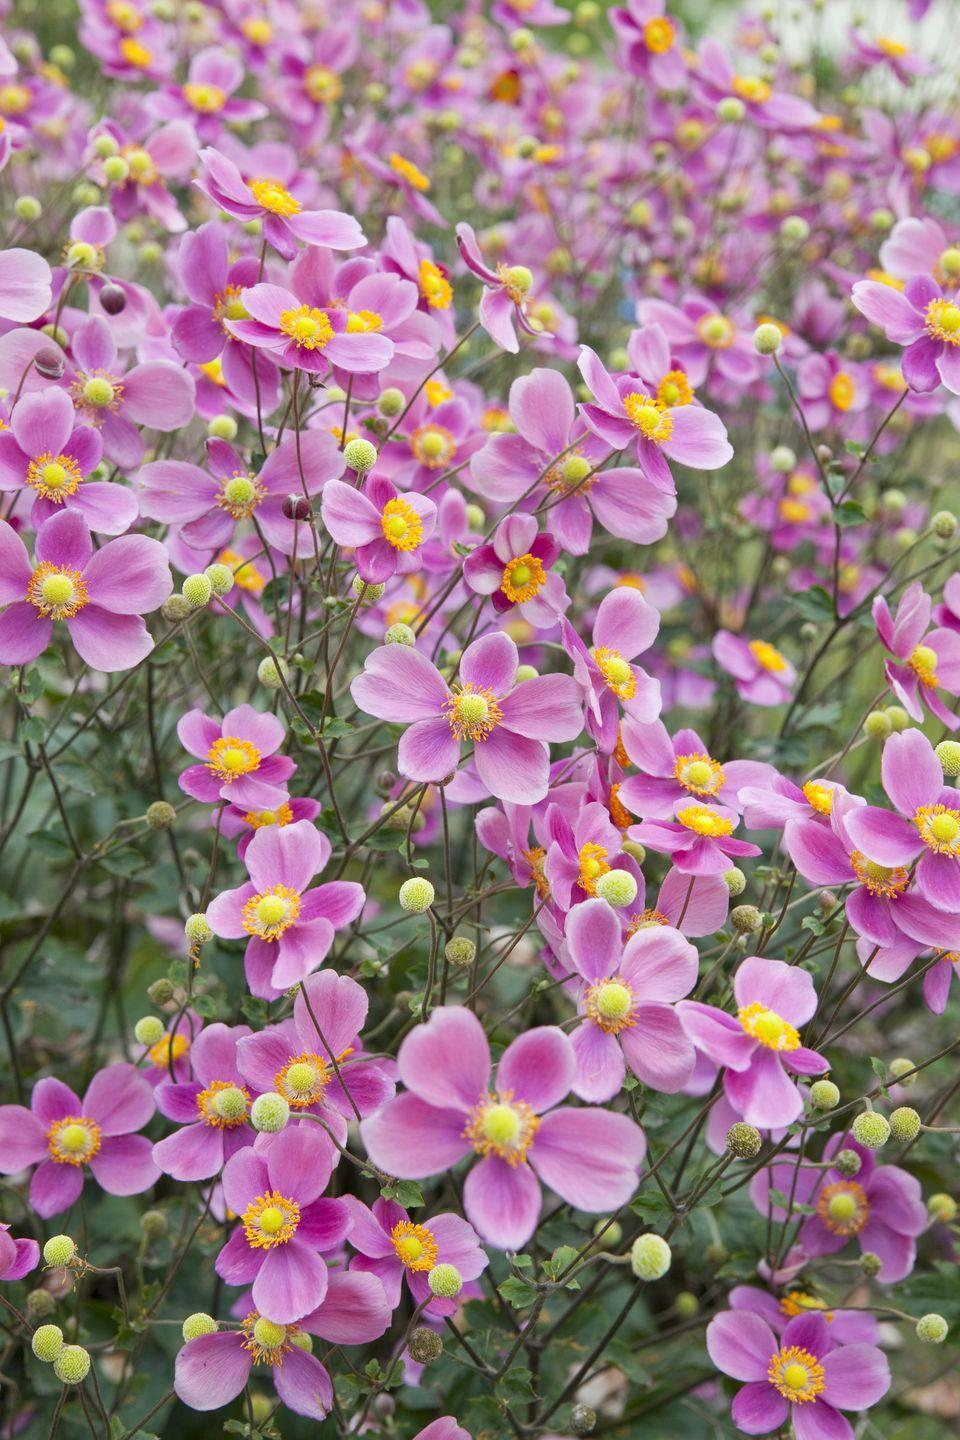 """<p>With a long blooming season, white, pink, and purple <a href=""""http://www.costafarms.com/plants/japanese-anemone"""" rel=""""nofollow noopener"""" target=""""_blank"""" data-ylk=""""slk:anemones"""" class=""""link rapid-noclick-resp"""">anemones</a> make a colorful impact well into the fall season. A member of the buttercup family, Japanese anemone prefers shady spots and moist soil.</p><p><strong>When it blooms: </strong>Late July to October</p><p><strong>Where to plant:</strong> Partial shade</p><p><strong>When to plant: </strong>Spring, after last frost, through fall</p><p><strong>USDA Hardiness Zones:</strong> 4 to 7</p>"""